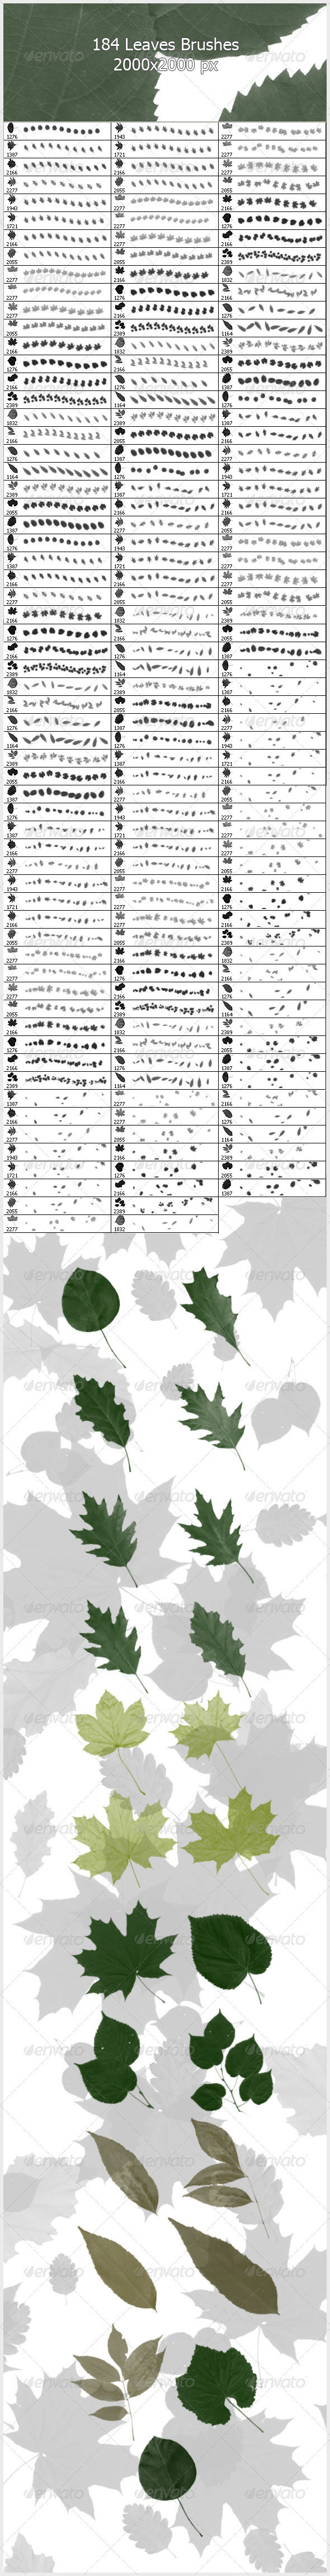 184 Leaves Brushes ( 2000px ) - Flourishes Brushes